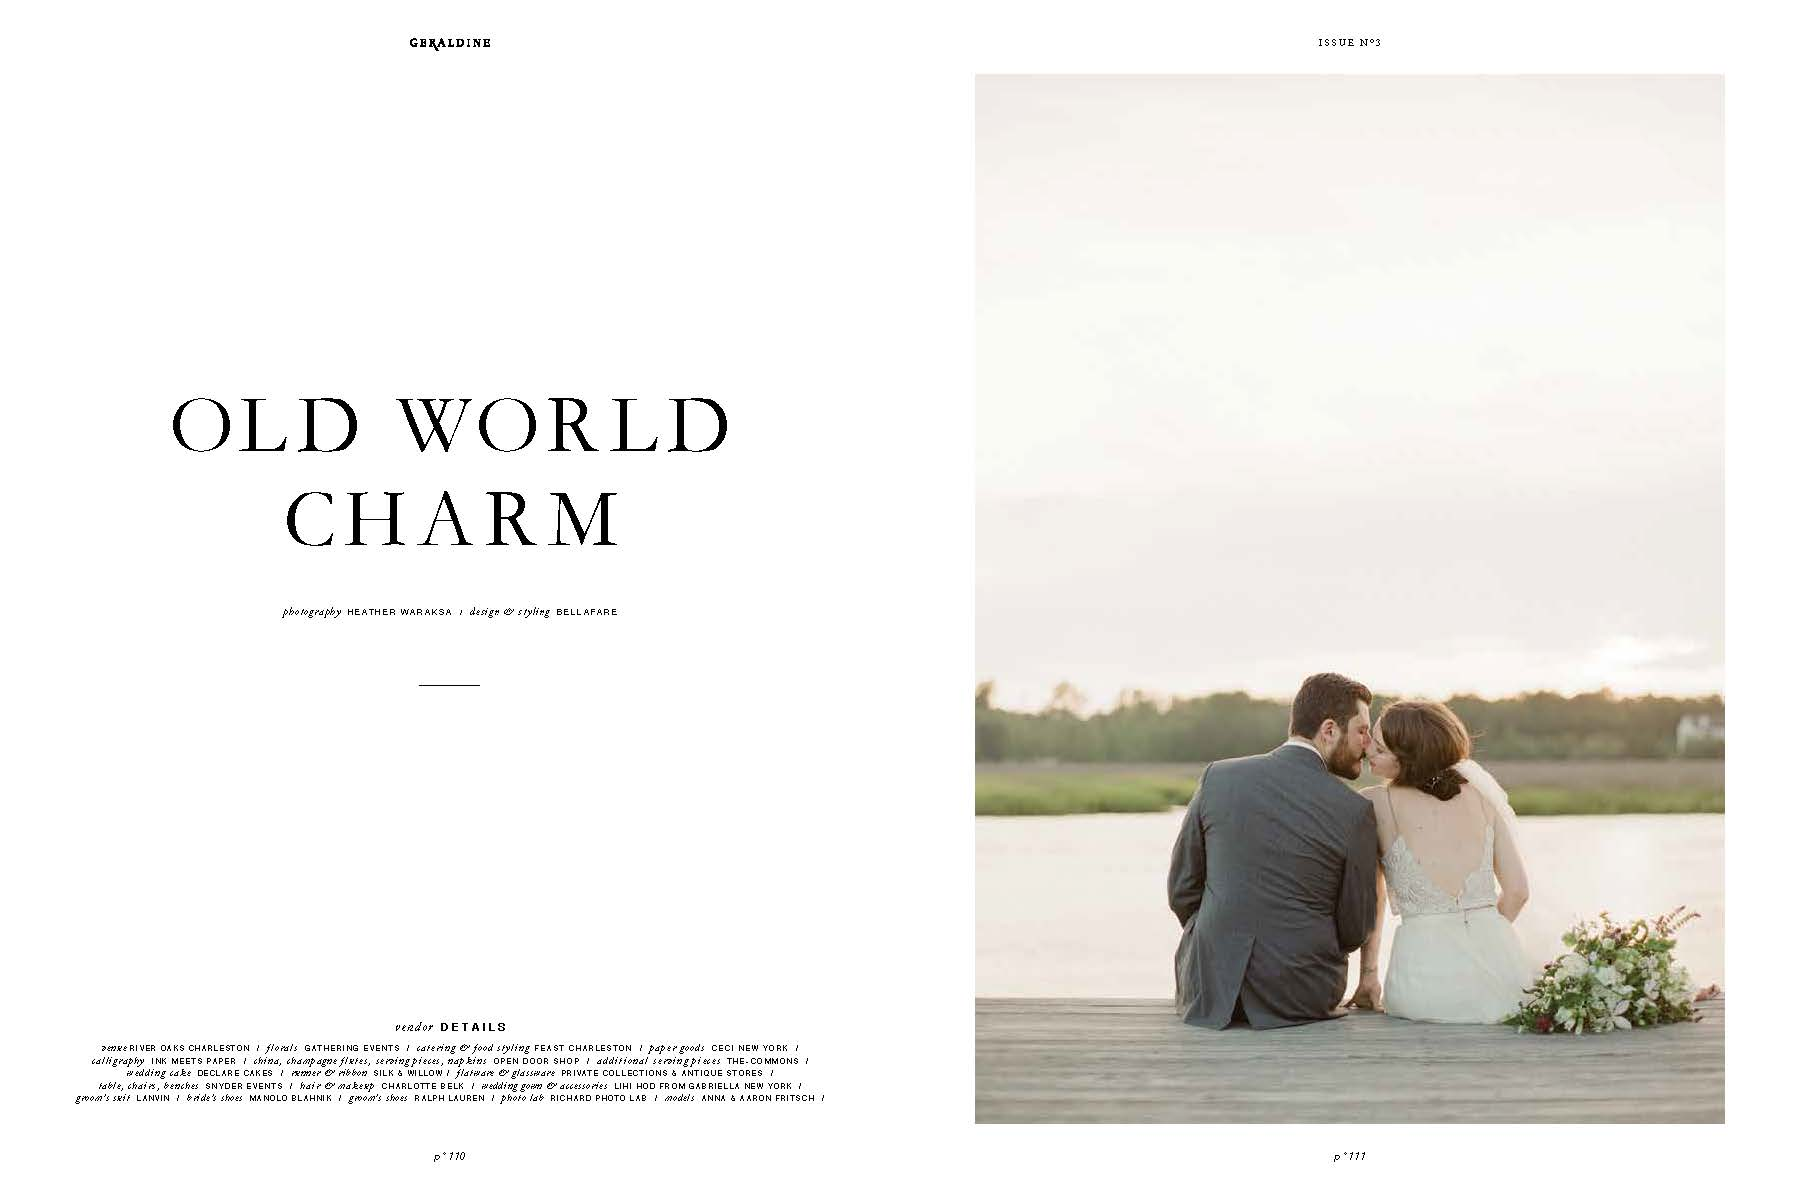 Pages from OldWorldCharm_GeraldineIssue03_page 1.jpg